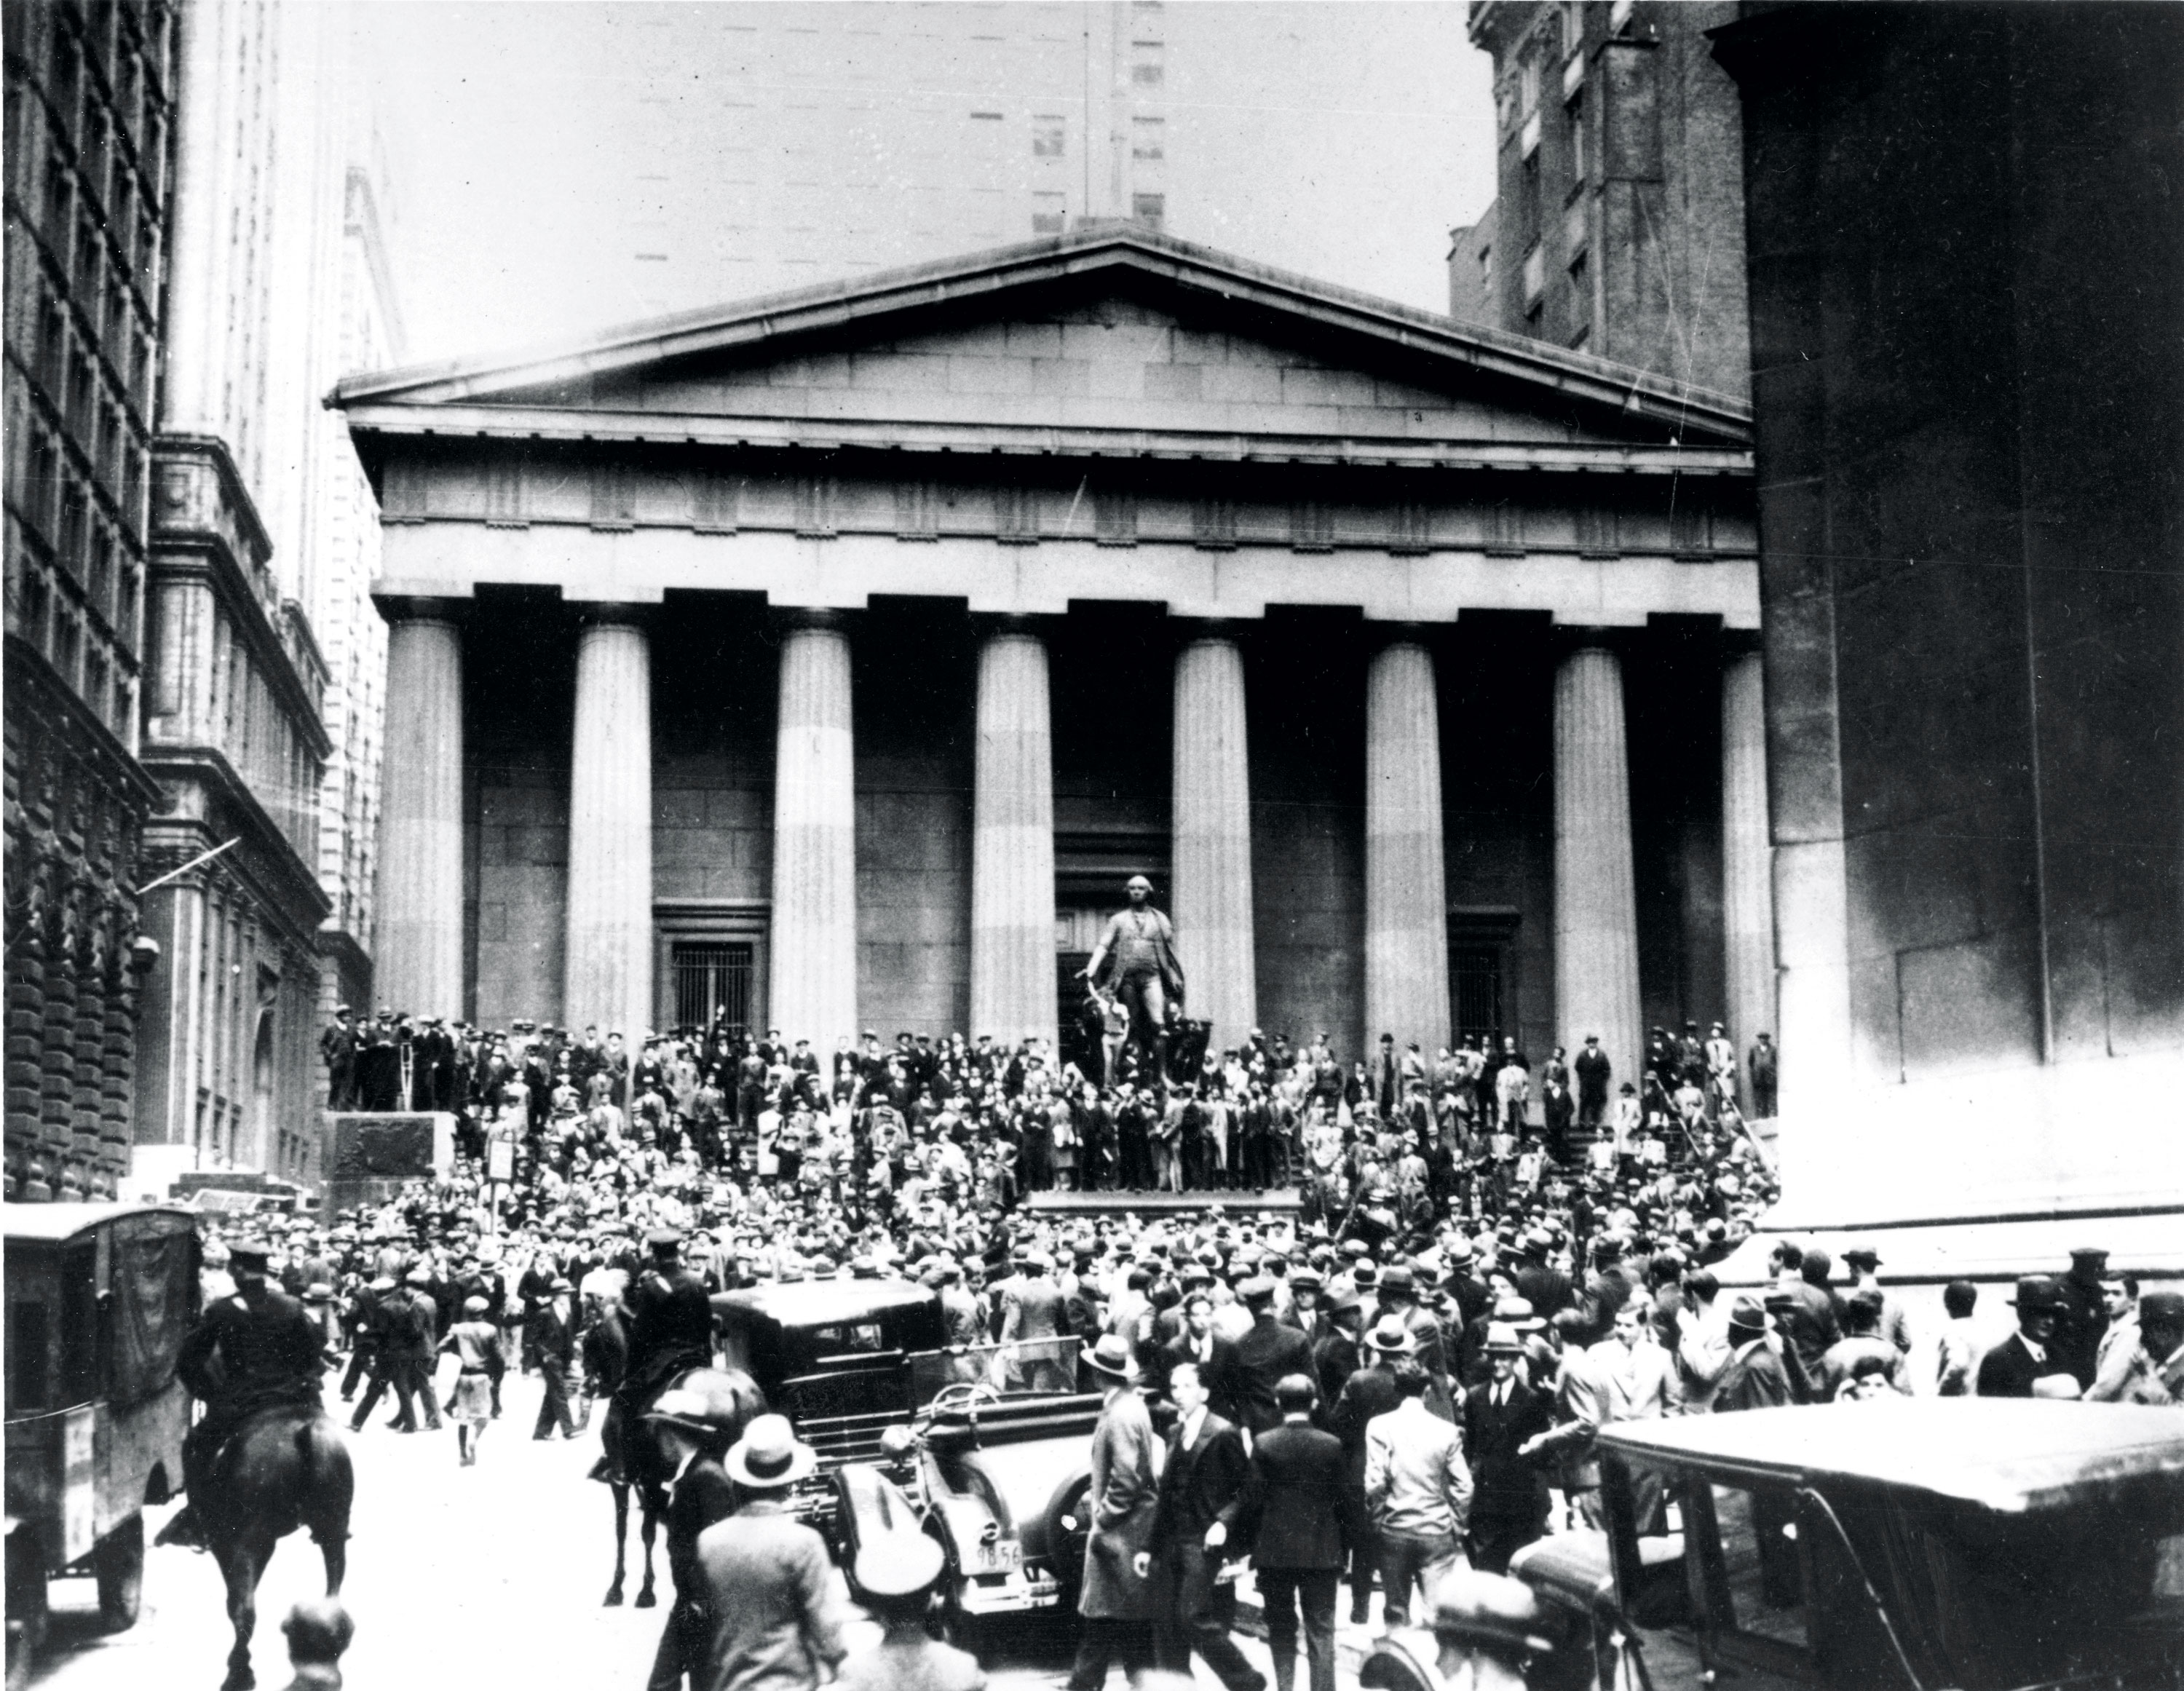 Associated Press Domestic News New York United States 1929 STOCK MARKET CRASH